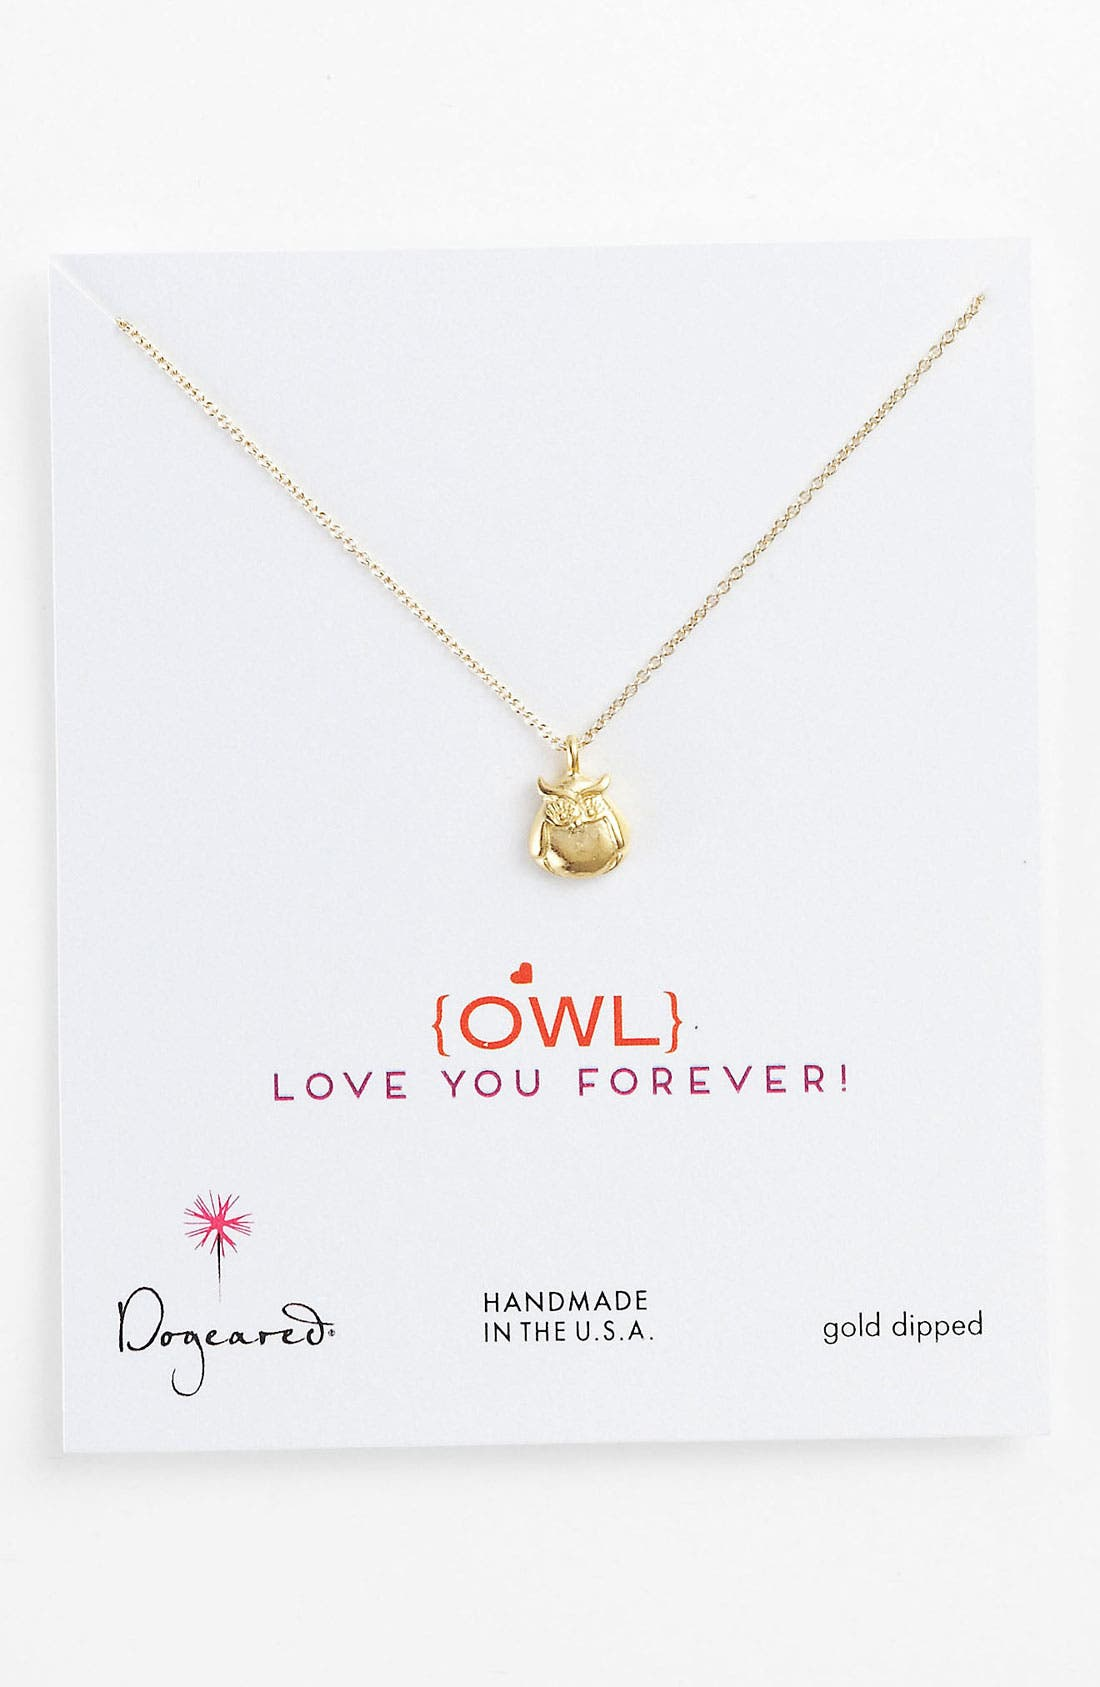 Alternate Image 1 Selected - Dogeared 'Love - Owl Love You Forever' Pendant Necklace